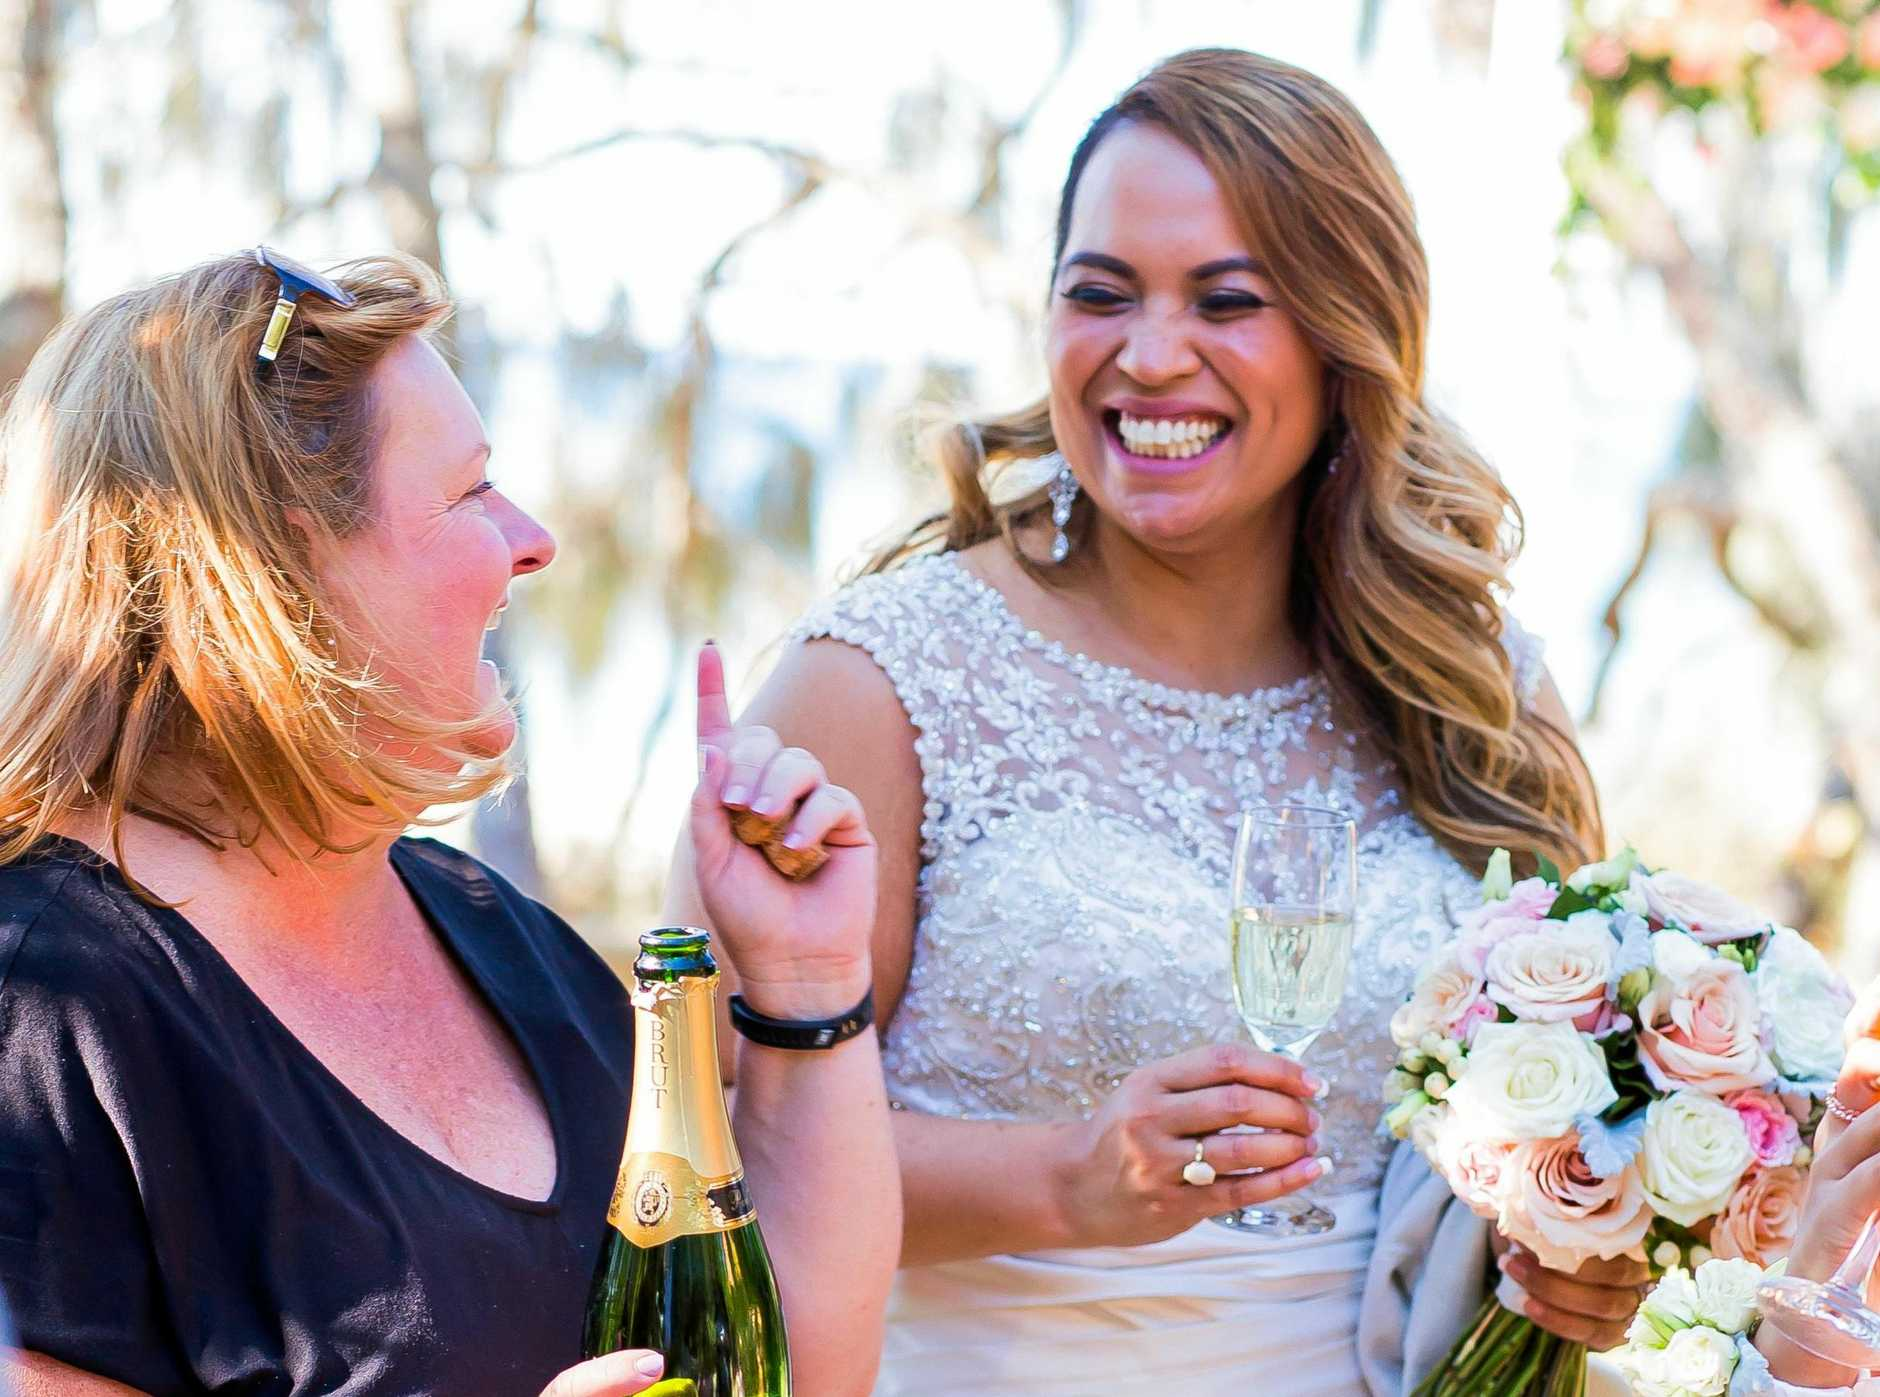 Wedding planner Julie-Ann Brown, pictured with one of her brides, welcomes the legalisation of same-sex marriage and the boost it would bring to the Sunshine Coast wedding industry.